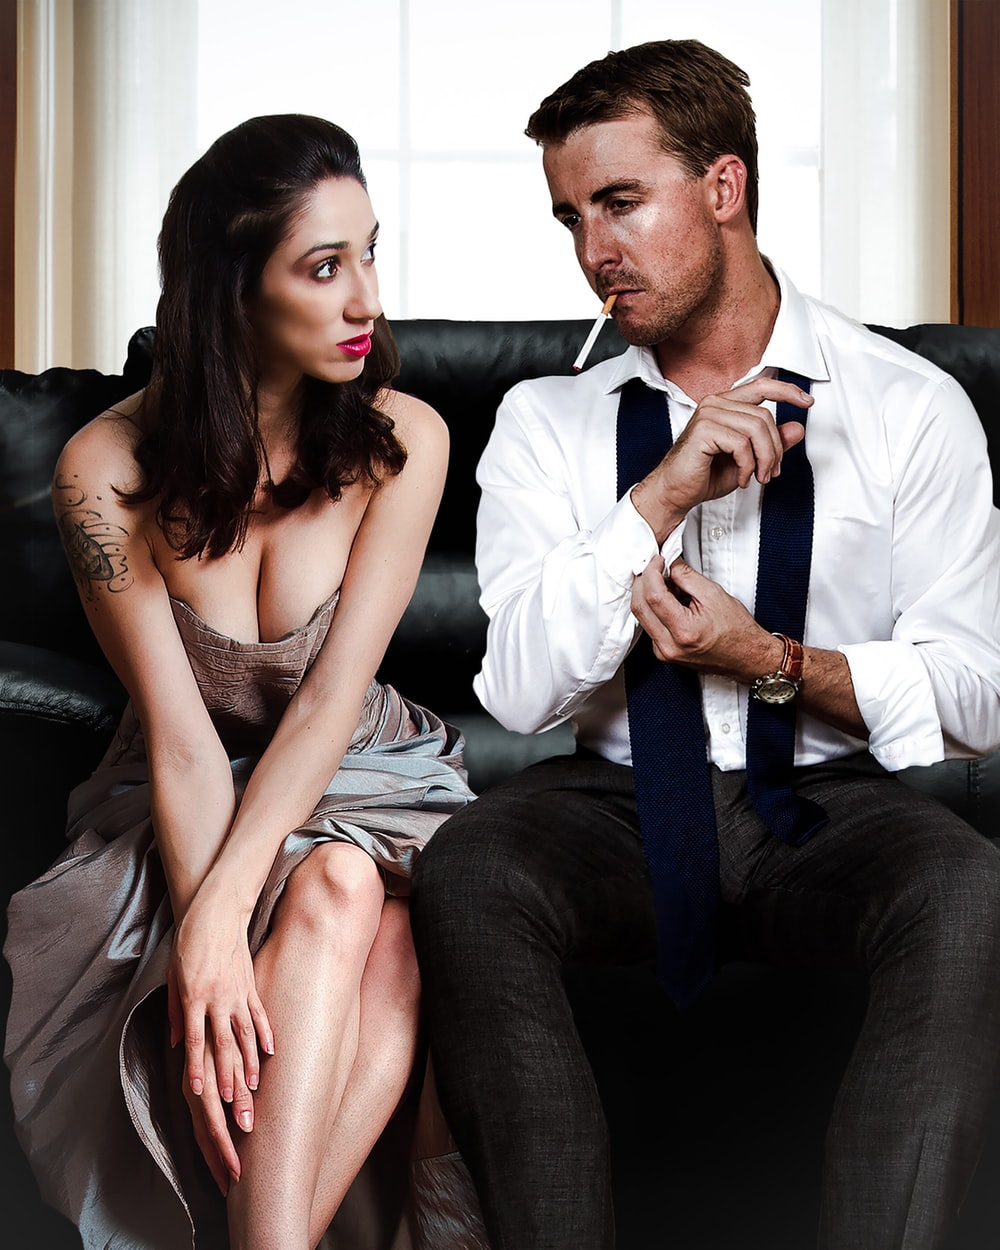 man sitting on sofa beside woman